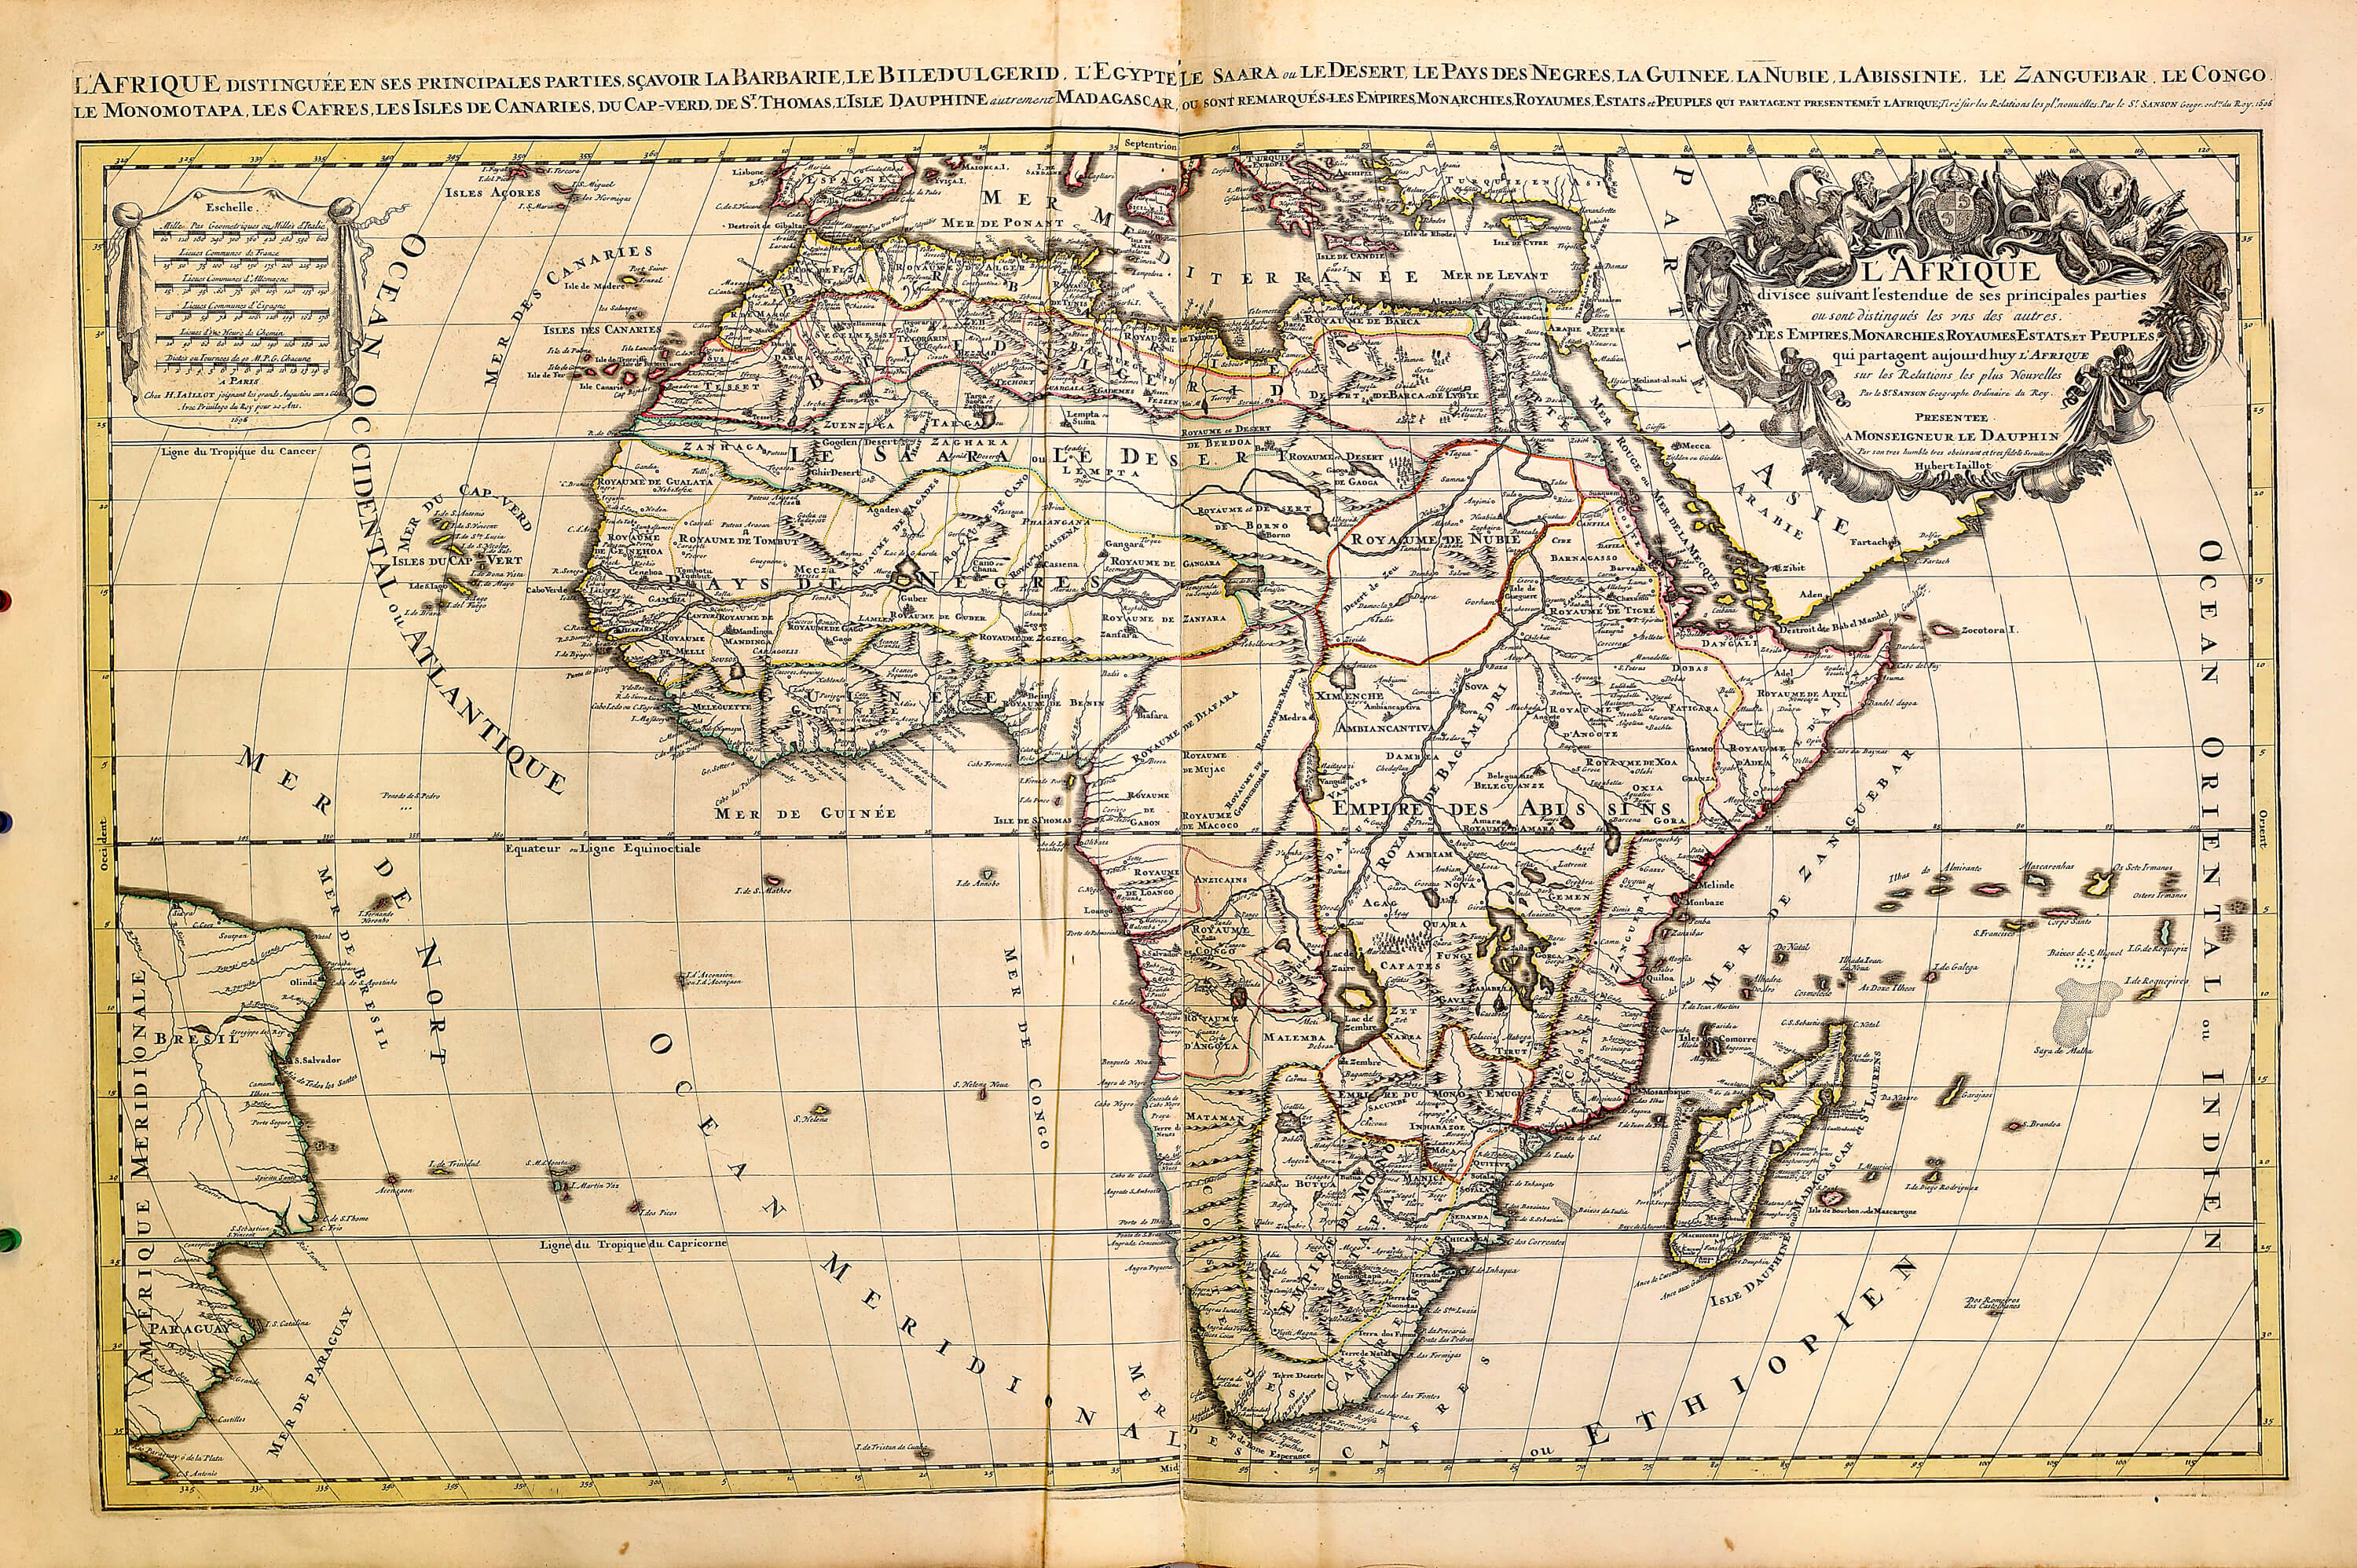 World atlas by huberjaillot a 1 72 1696 sheets 3 101 l brown a 1 72 10 africa gumiabroncs Gallery